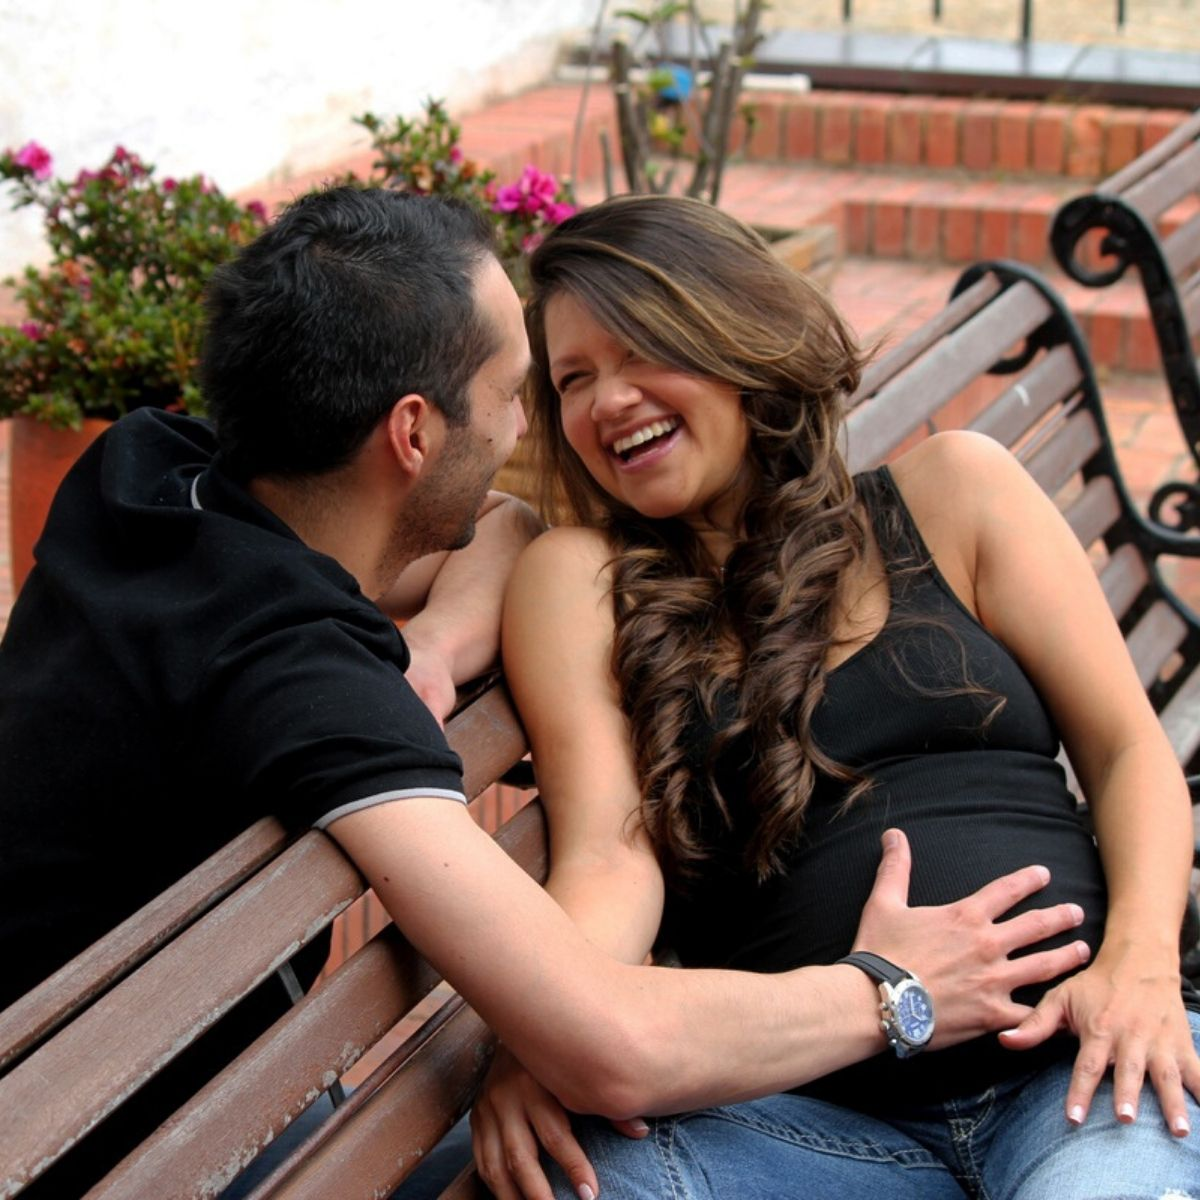 man has his right hand placed on his partner's pregnant stomach while they smile at each other